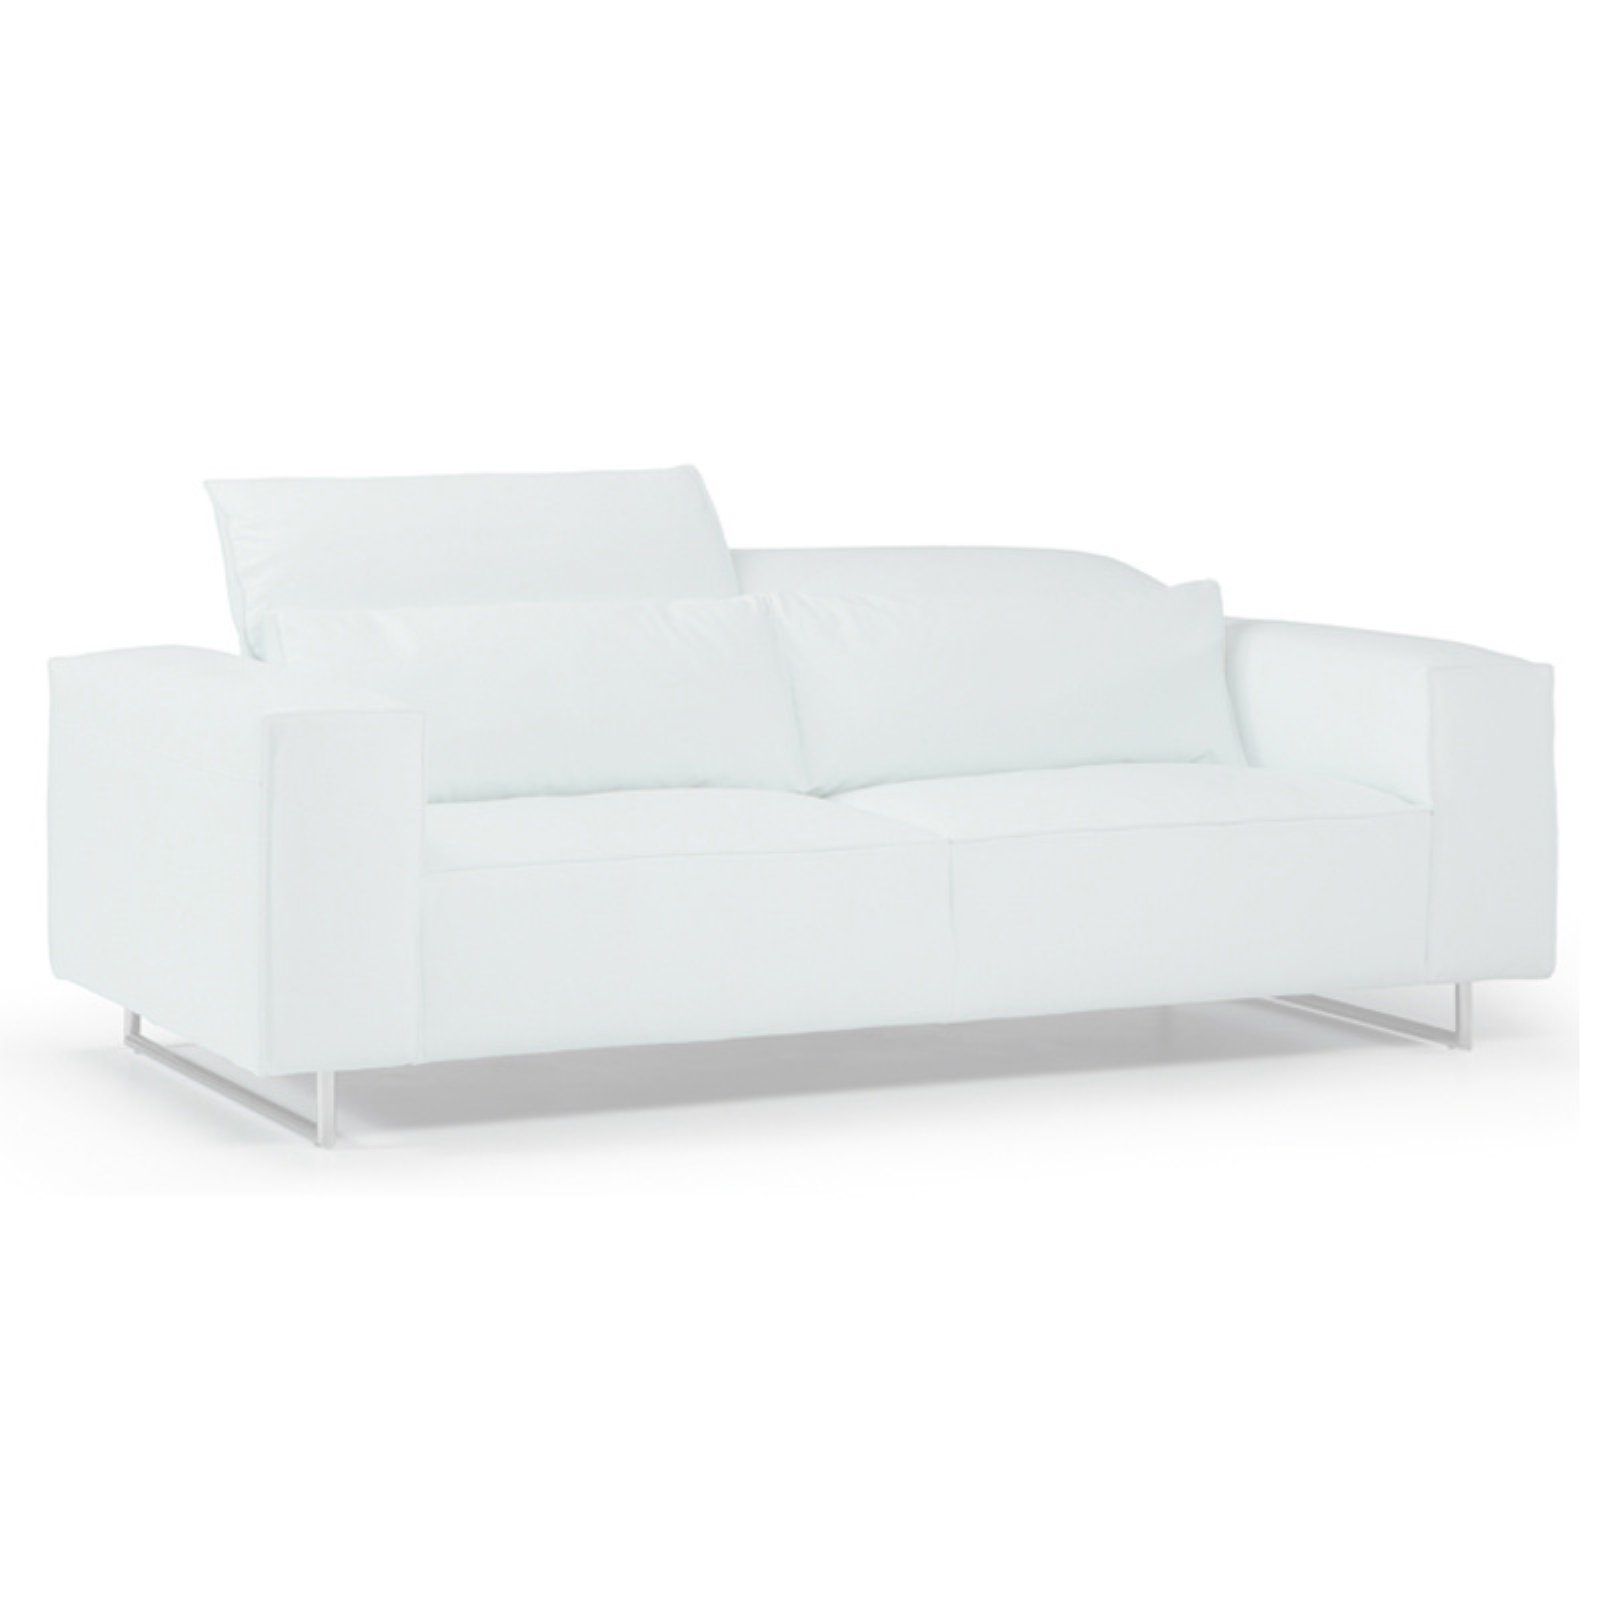 Magnificent Bellini Modern Living Giadia Loveseat With Adjustable Neck Caraccident5 Cool Chair Designs And Ideas Caraccident5Info